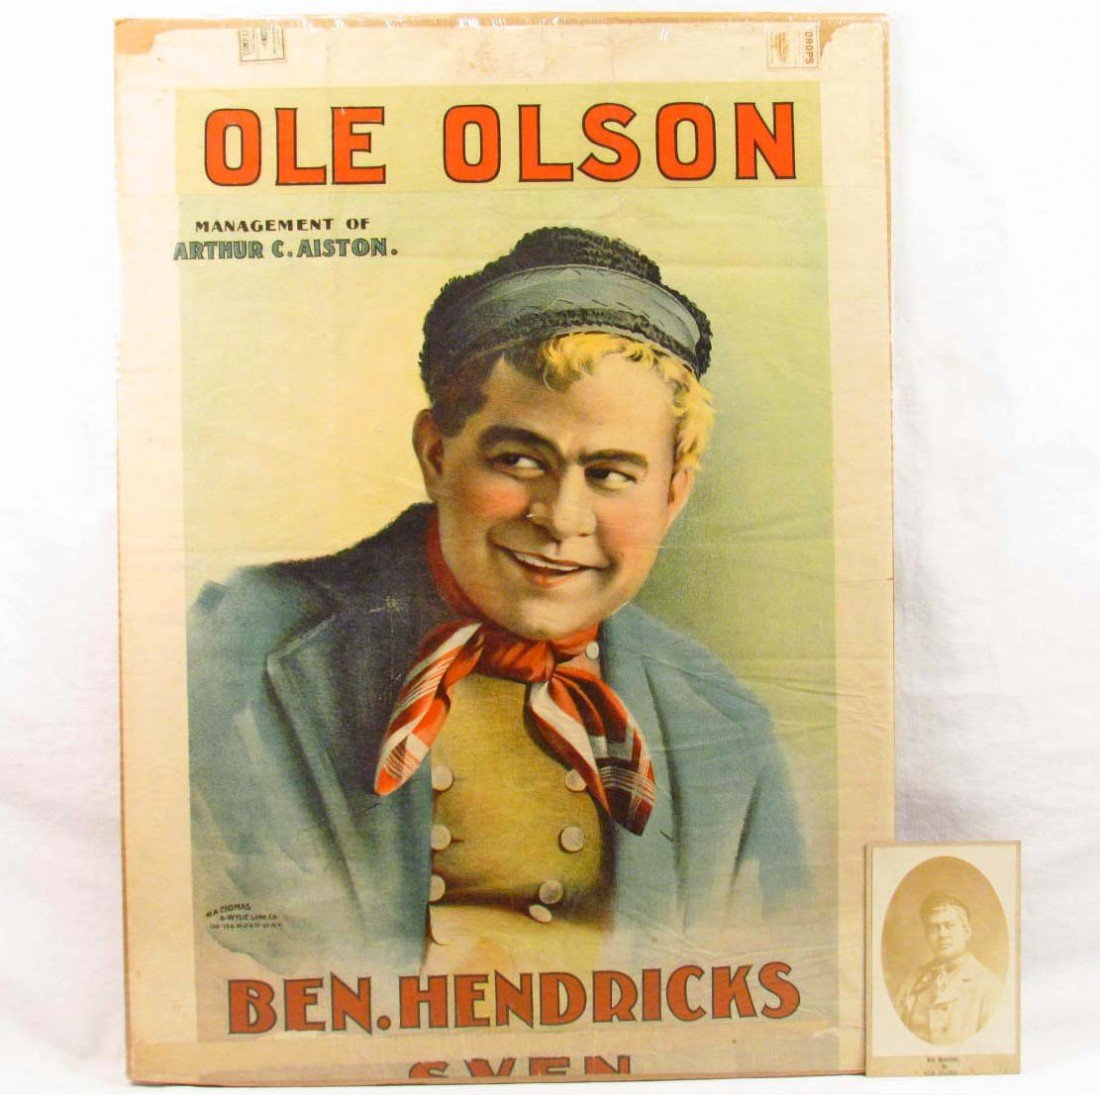 355: RARE VINTAGE POSTER AND PHOTO OF BEN HENDRICKS IN